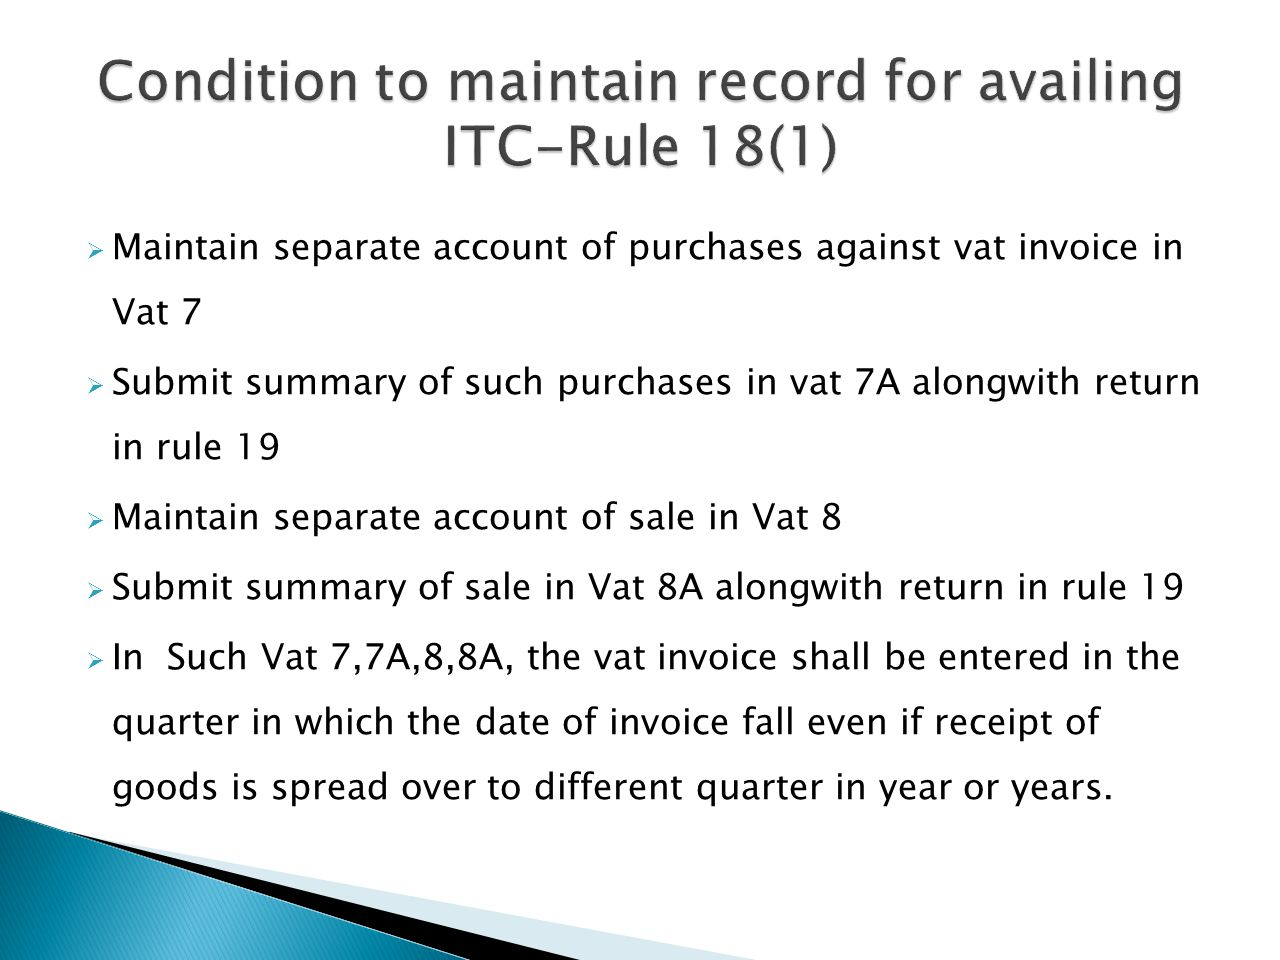 Condition to maintain record for availing ITC-Rule 18(1)